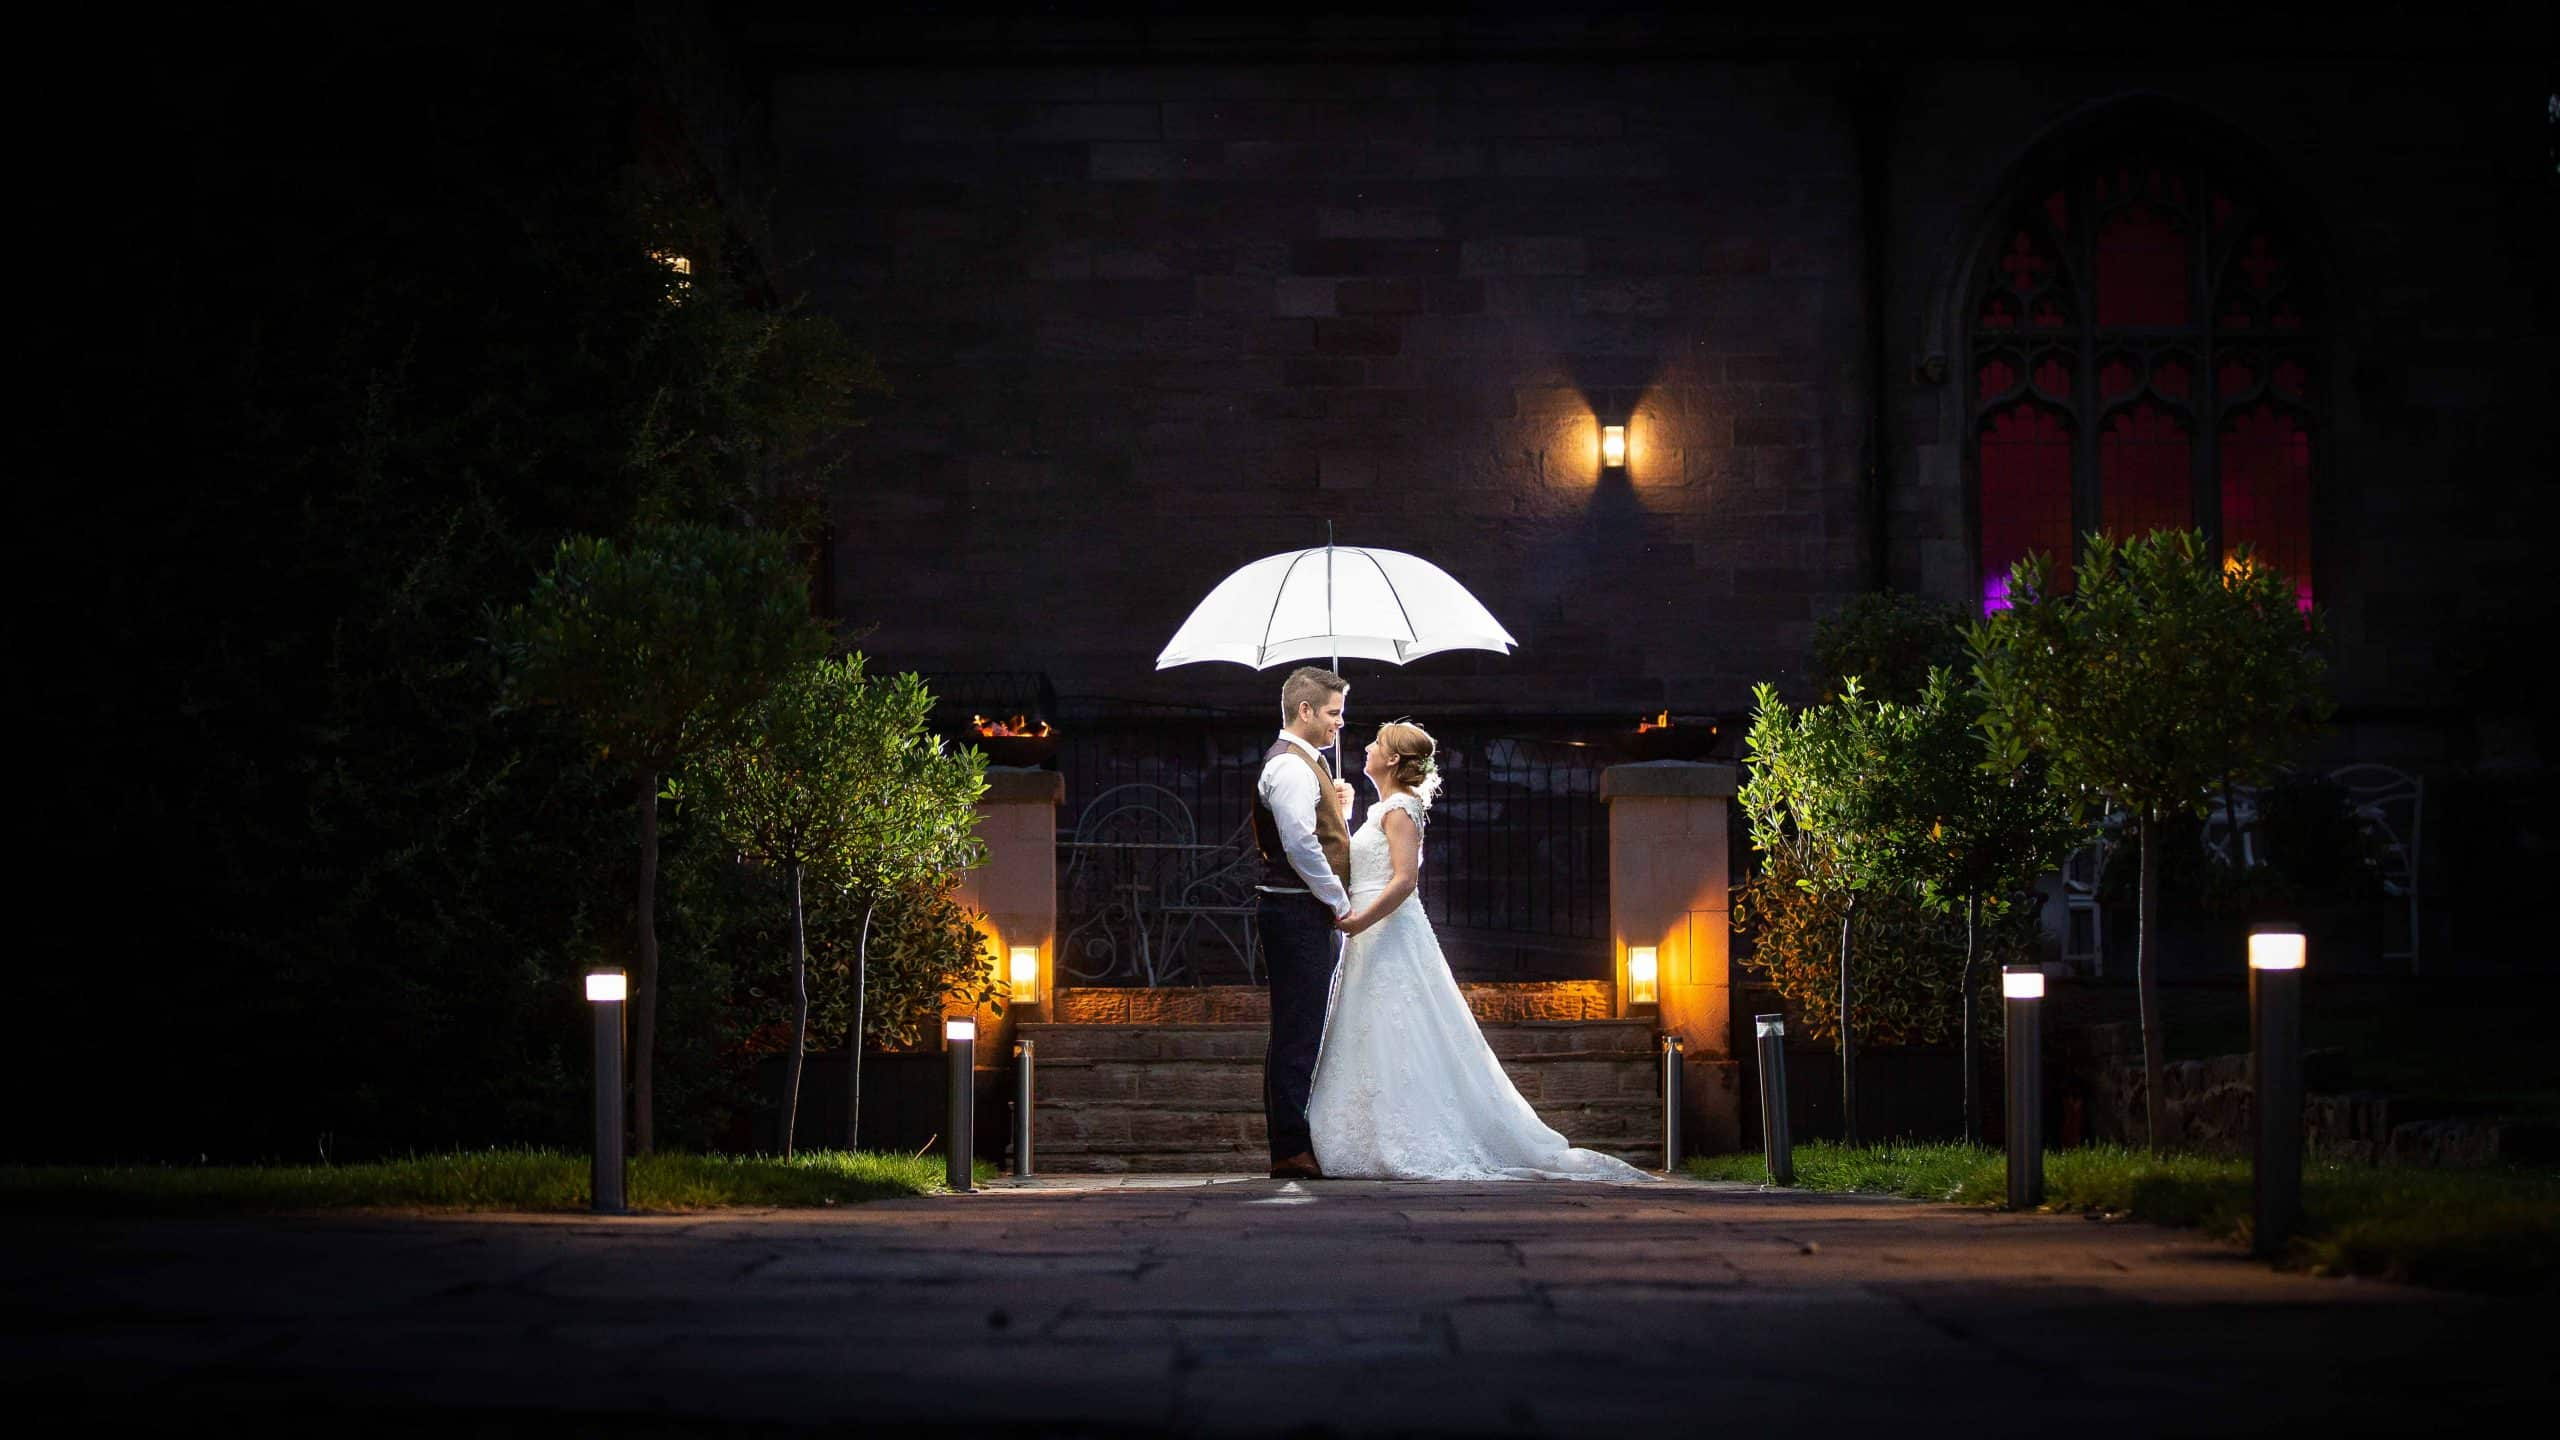 Award winning wedding images at Ellingham Hall